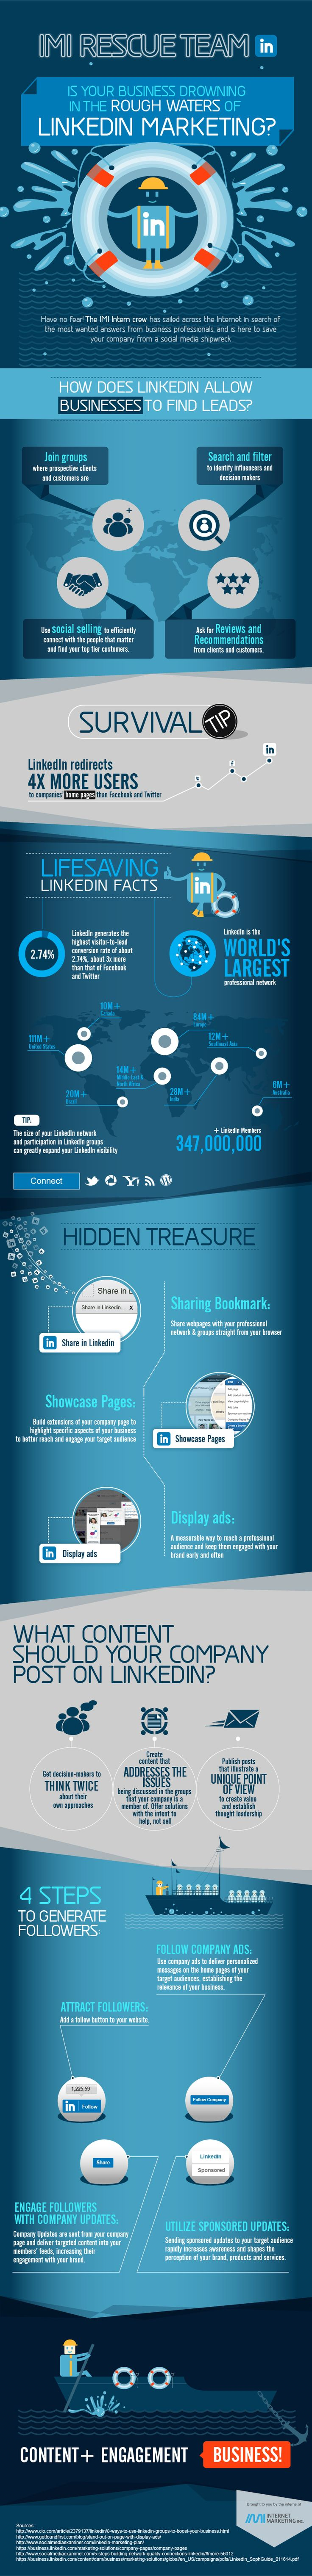 LinkedIn is a business-oriented networking site that is growing every day. It currently has over 347 million users, and redirects almost four times more users to companies' home pages than any other social networking site including Facebook and Twitter. Most businesses aren't aware of the value that LinkedIn has to offer including generating business leads with important figureheads in respected industries and the ability to connect with users and groups in unique and strategic ways.